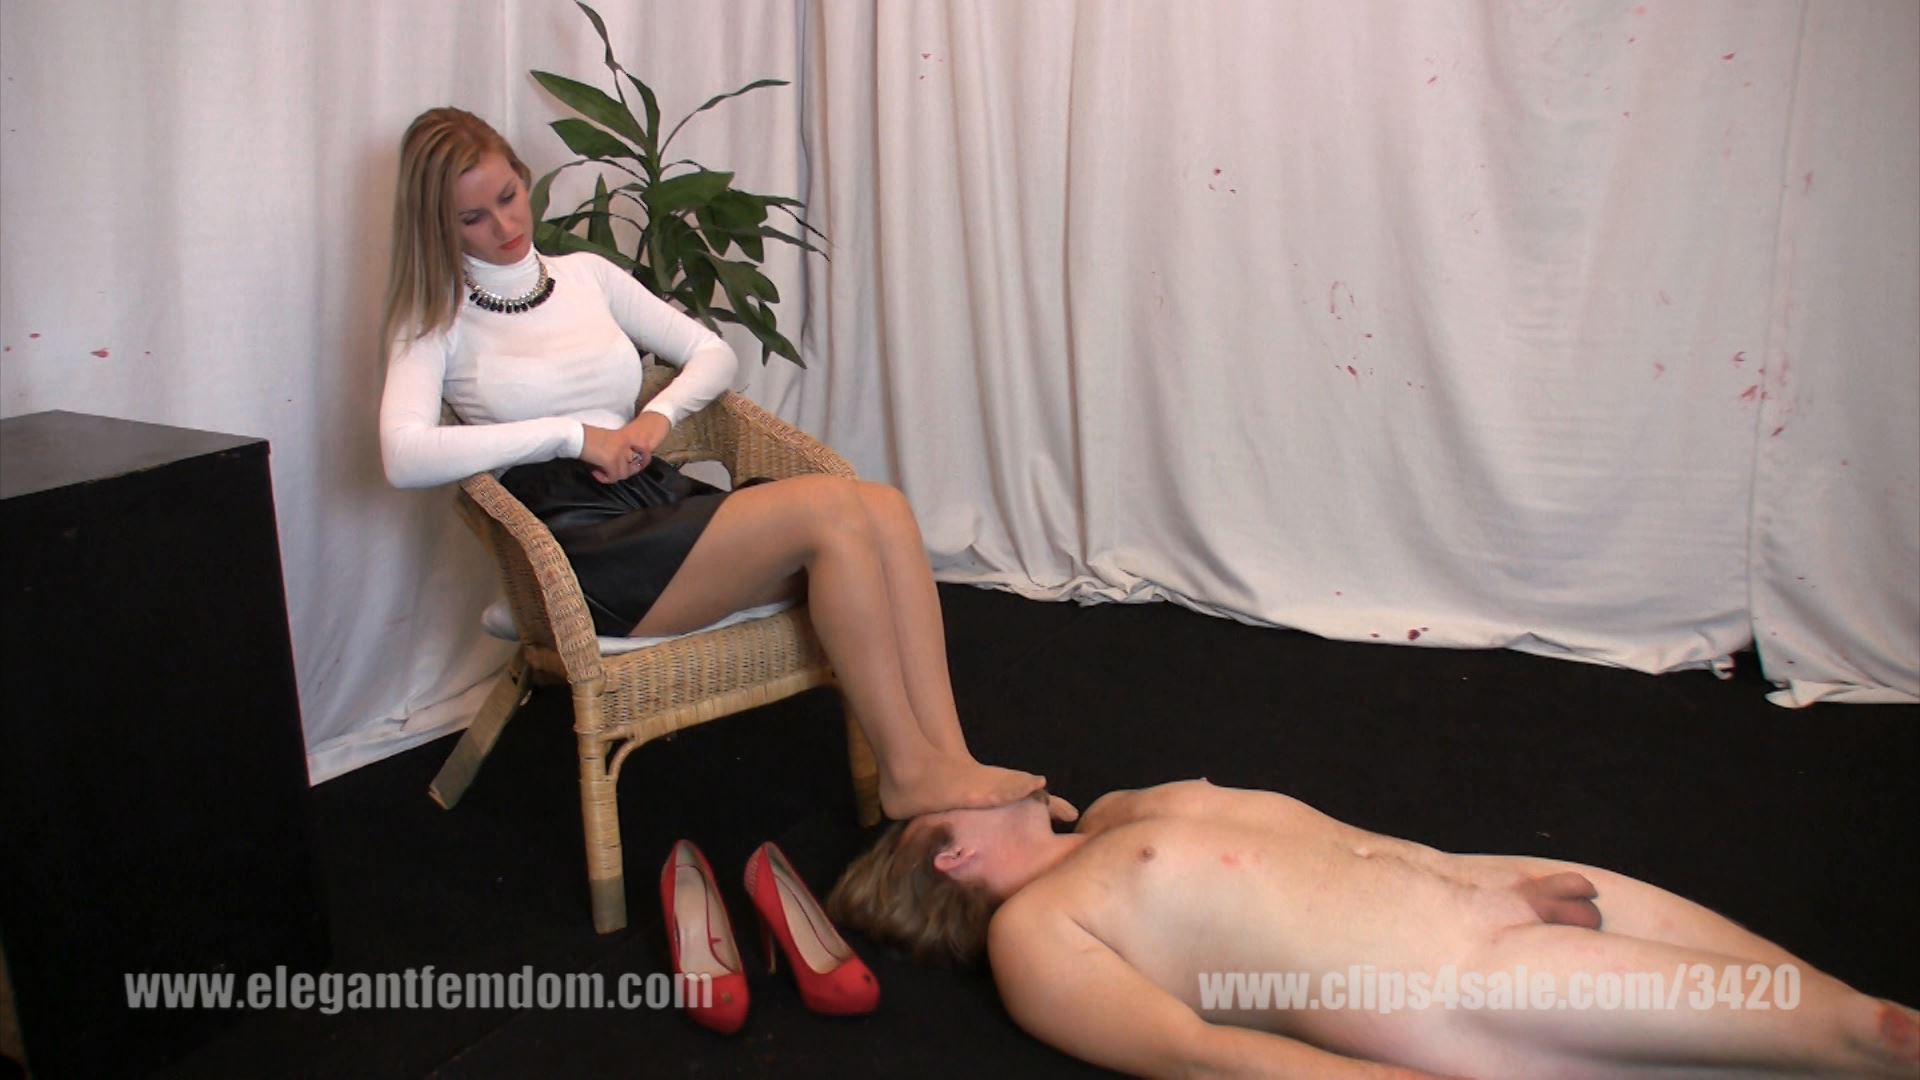 Excellent pantyhose teasing scene - ELEGANTFEMDOM - FULL HD/1080p/MP4